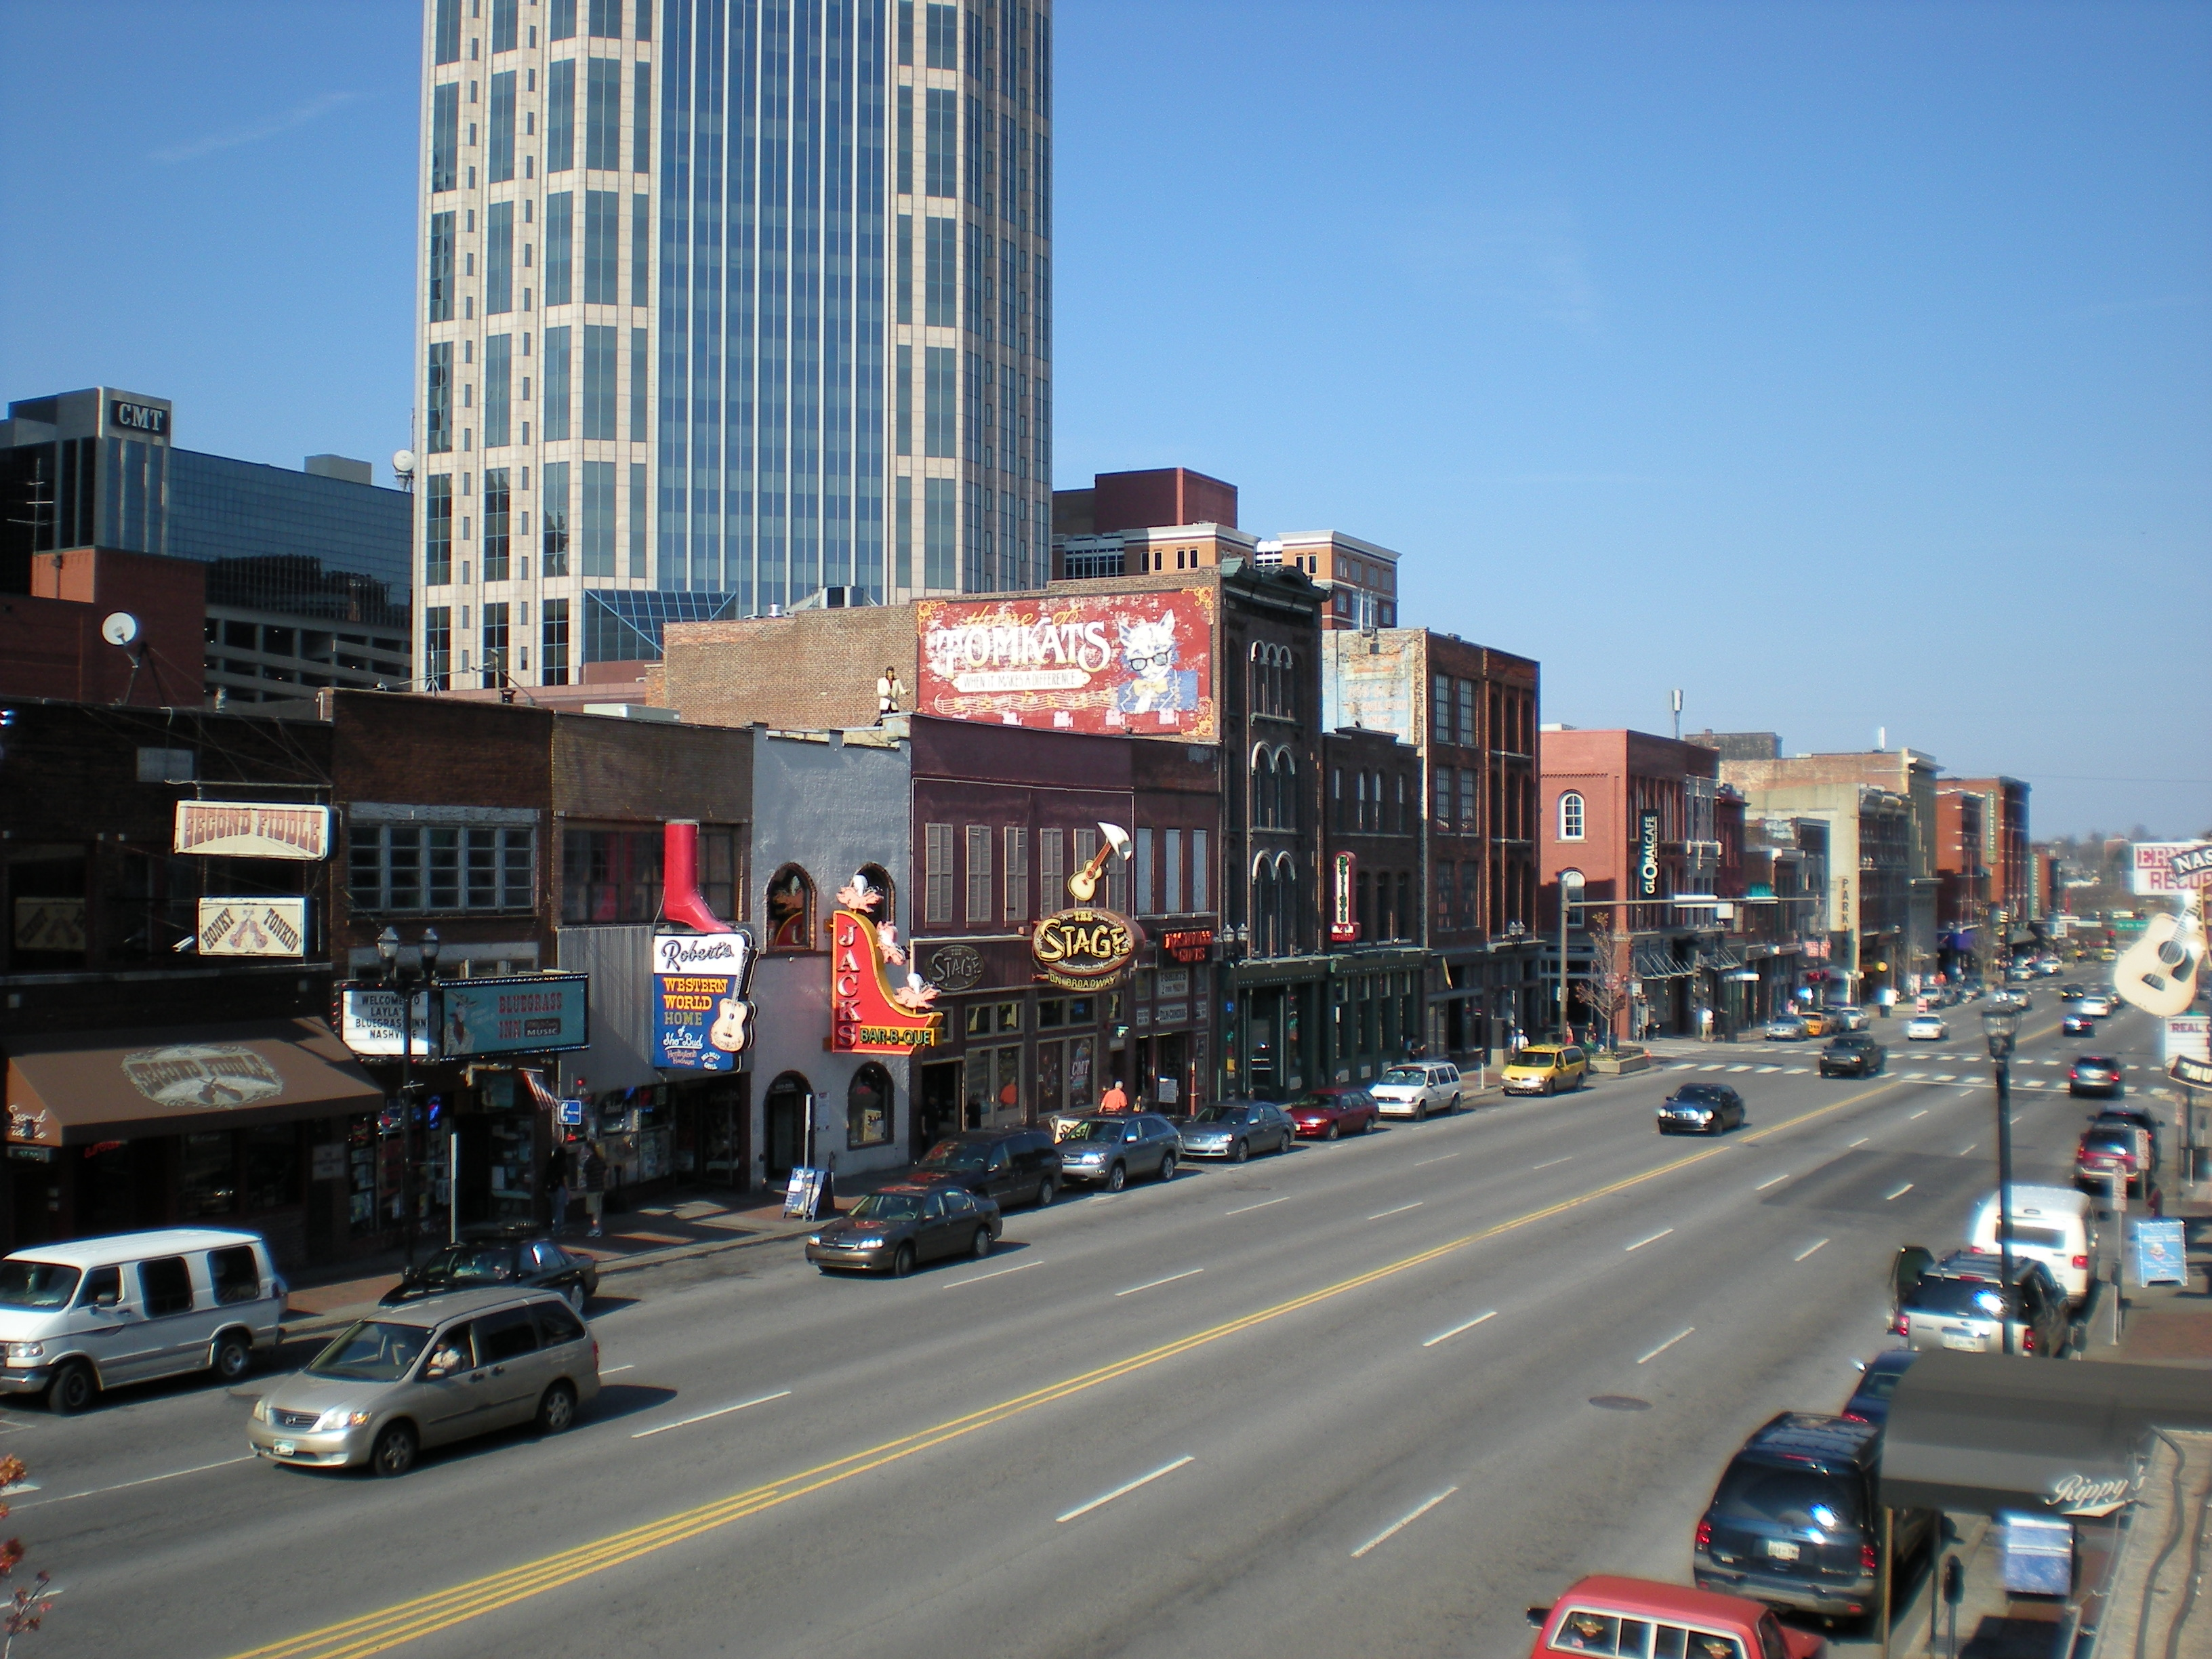 street nashville rentapplication to towns best historic franklin tech main live in com lincoln ave tennessee